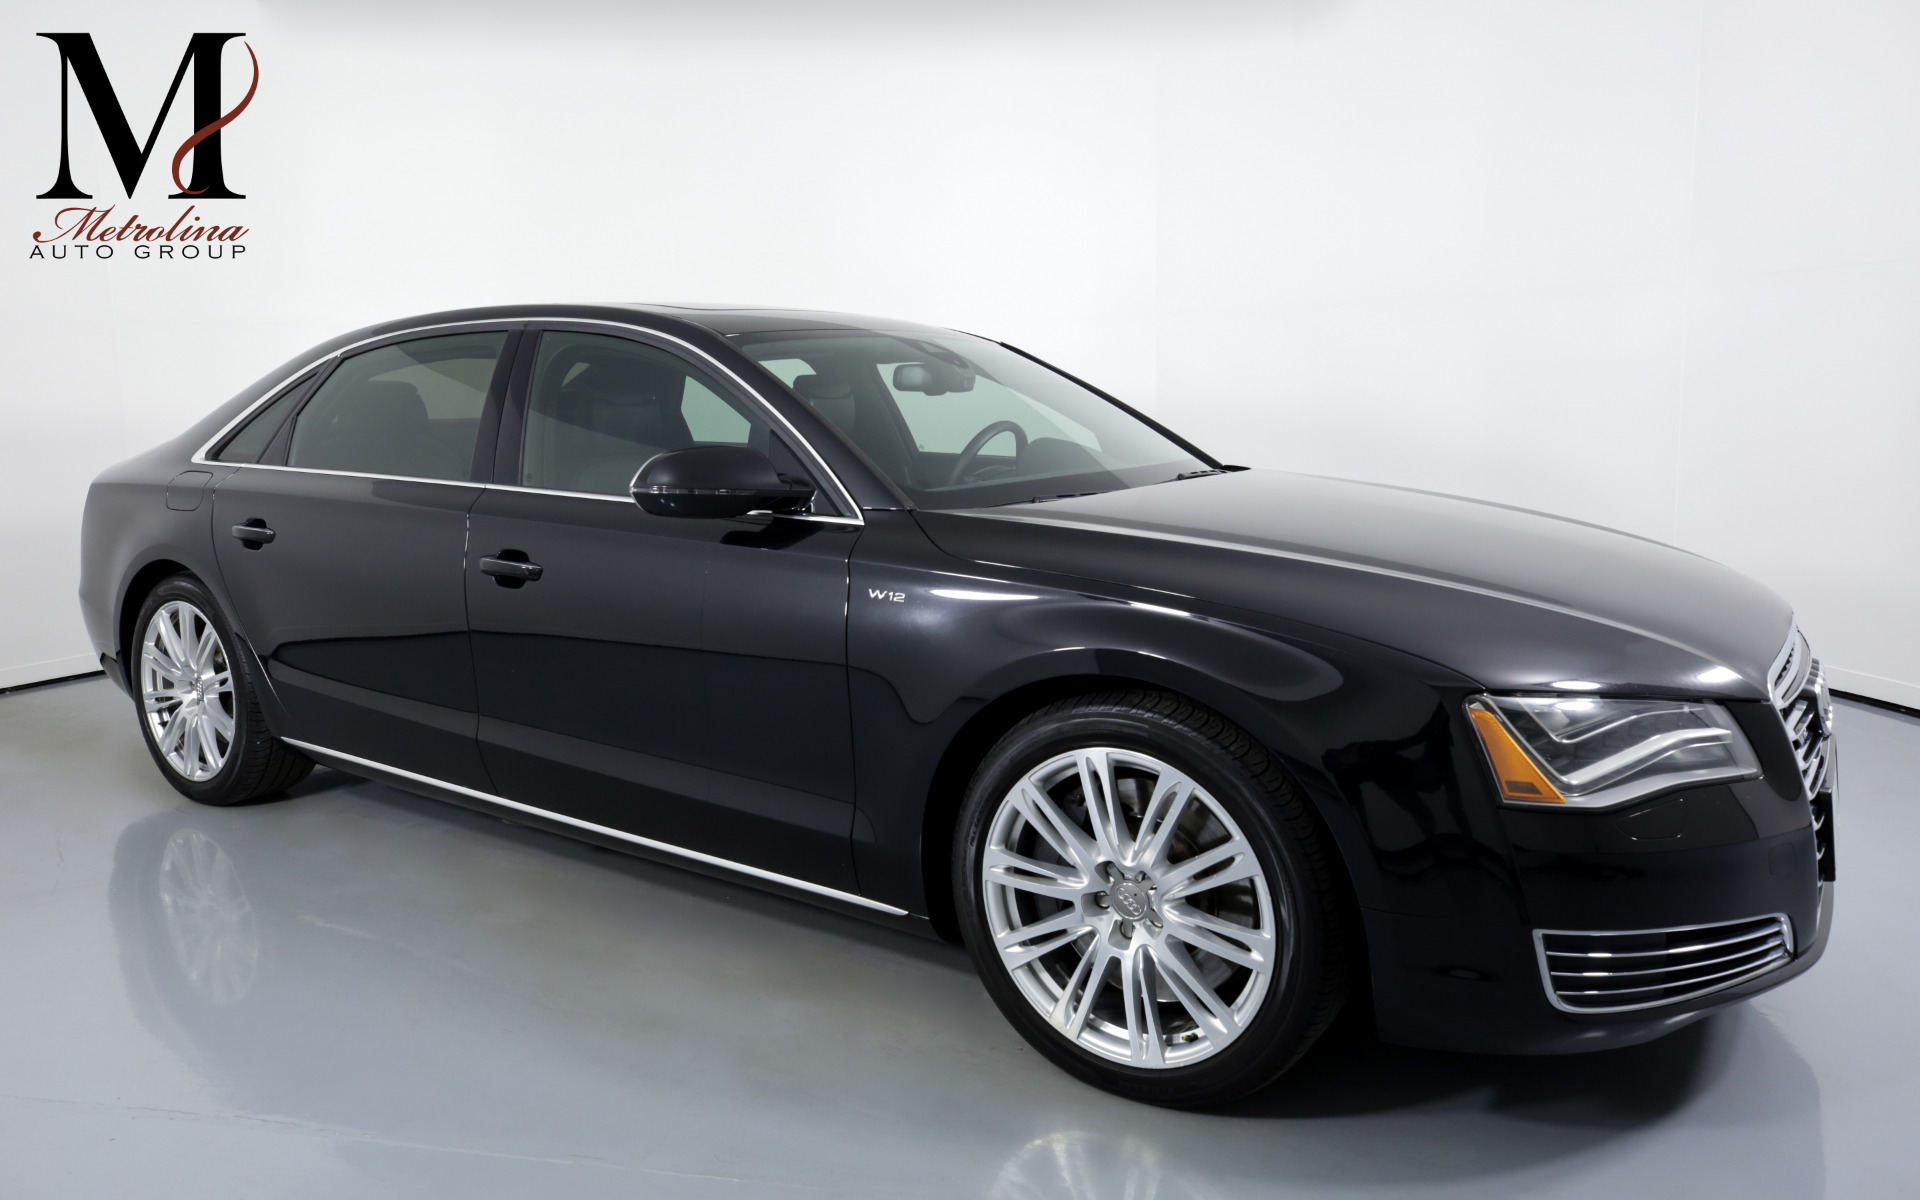 Used 2013 Audi A8 L W12 quattro for sale $37,596 at Metrolina Auto Group in Charlotte NC 28217 - 1